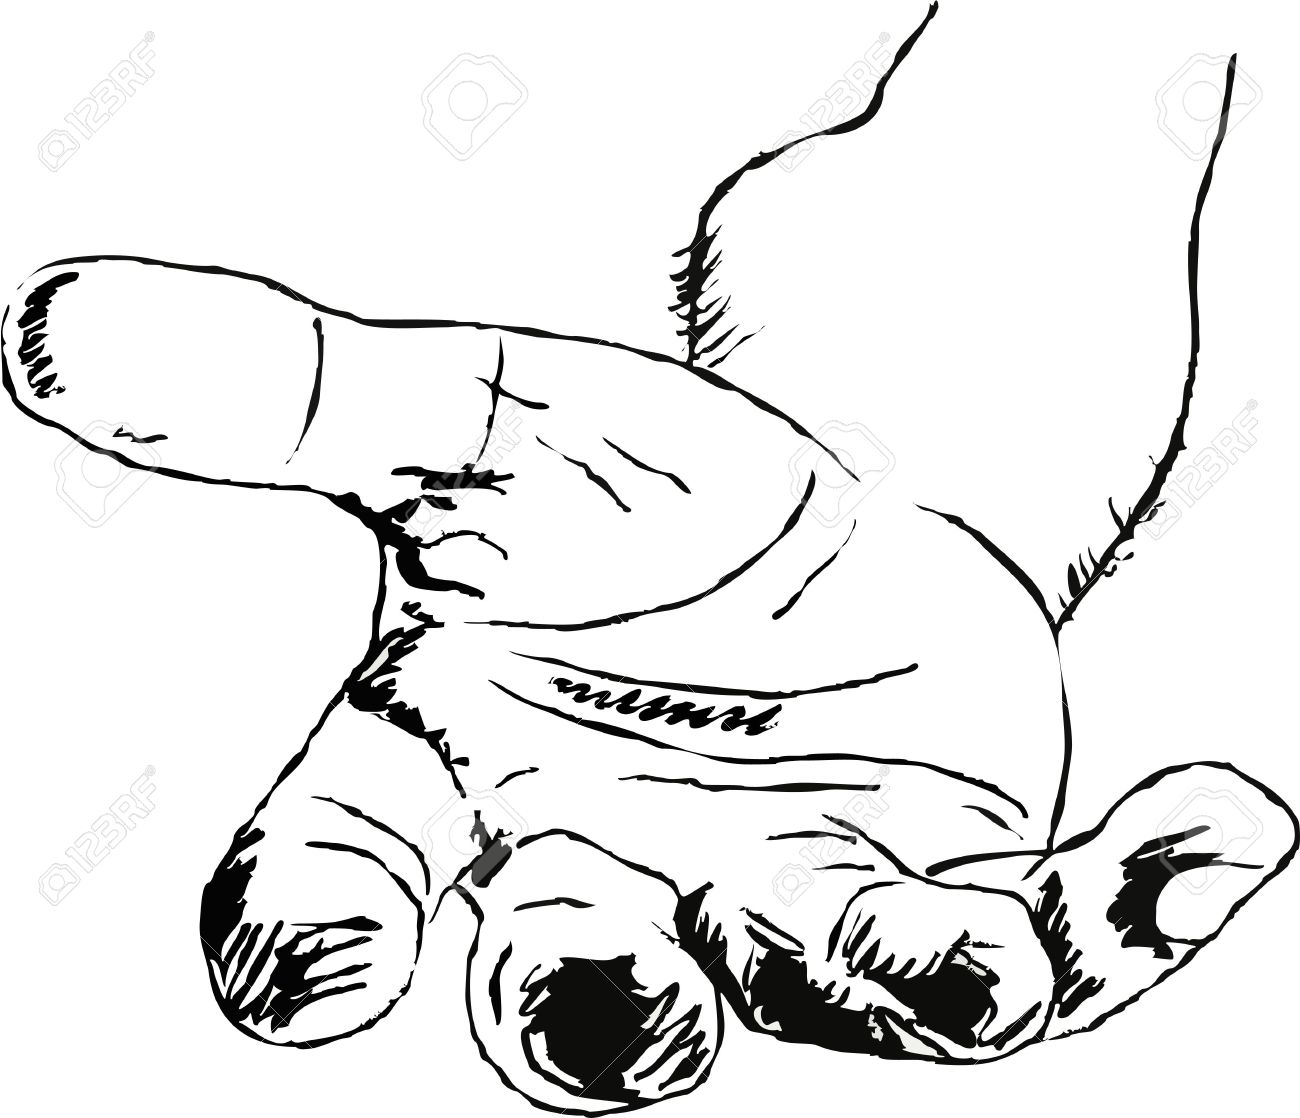 1300x1118 Line Drawing Of A Hand Gesture Offering Help And Assistance Stock